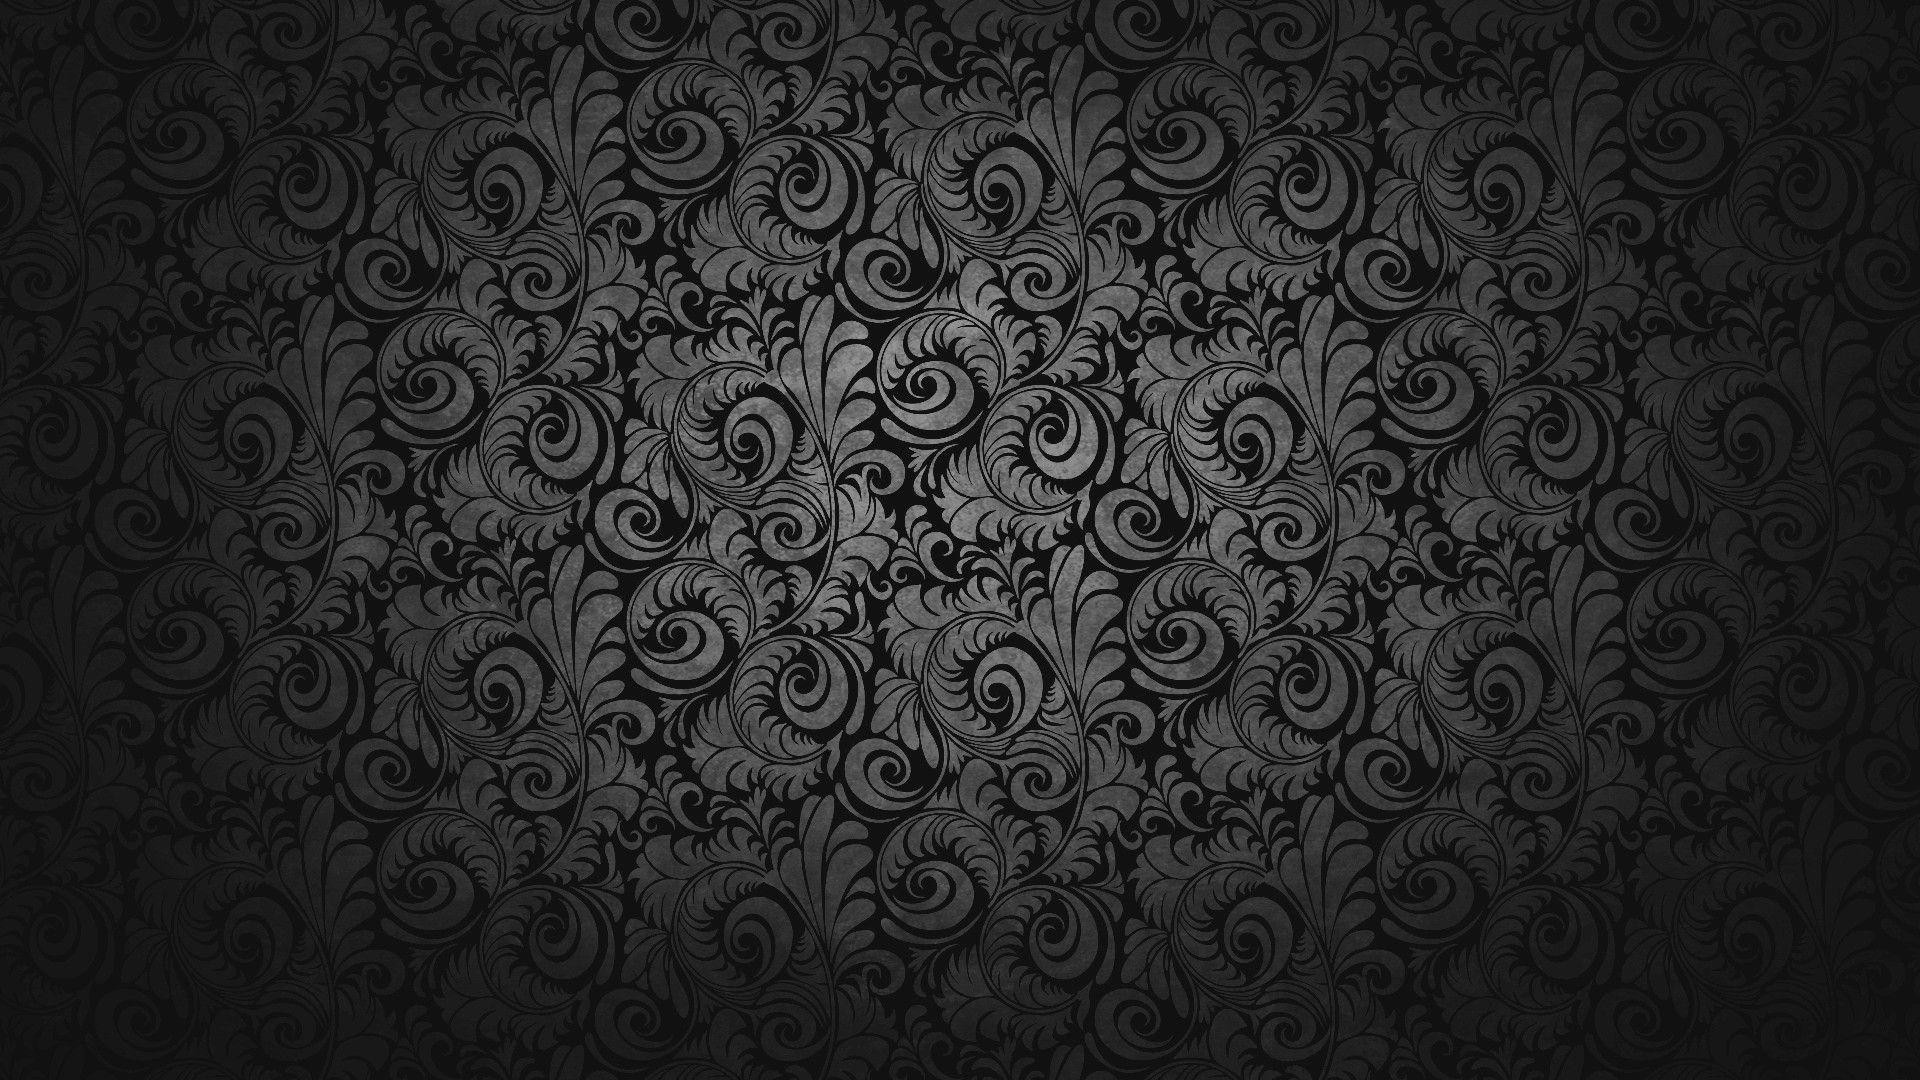 Res: 1920x1080, black-abstract-hd-wallpaper-1080p.jpg | inkt